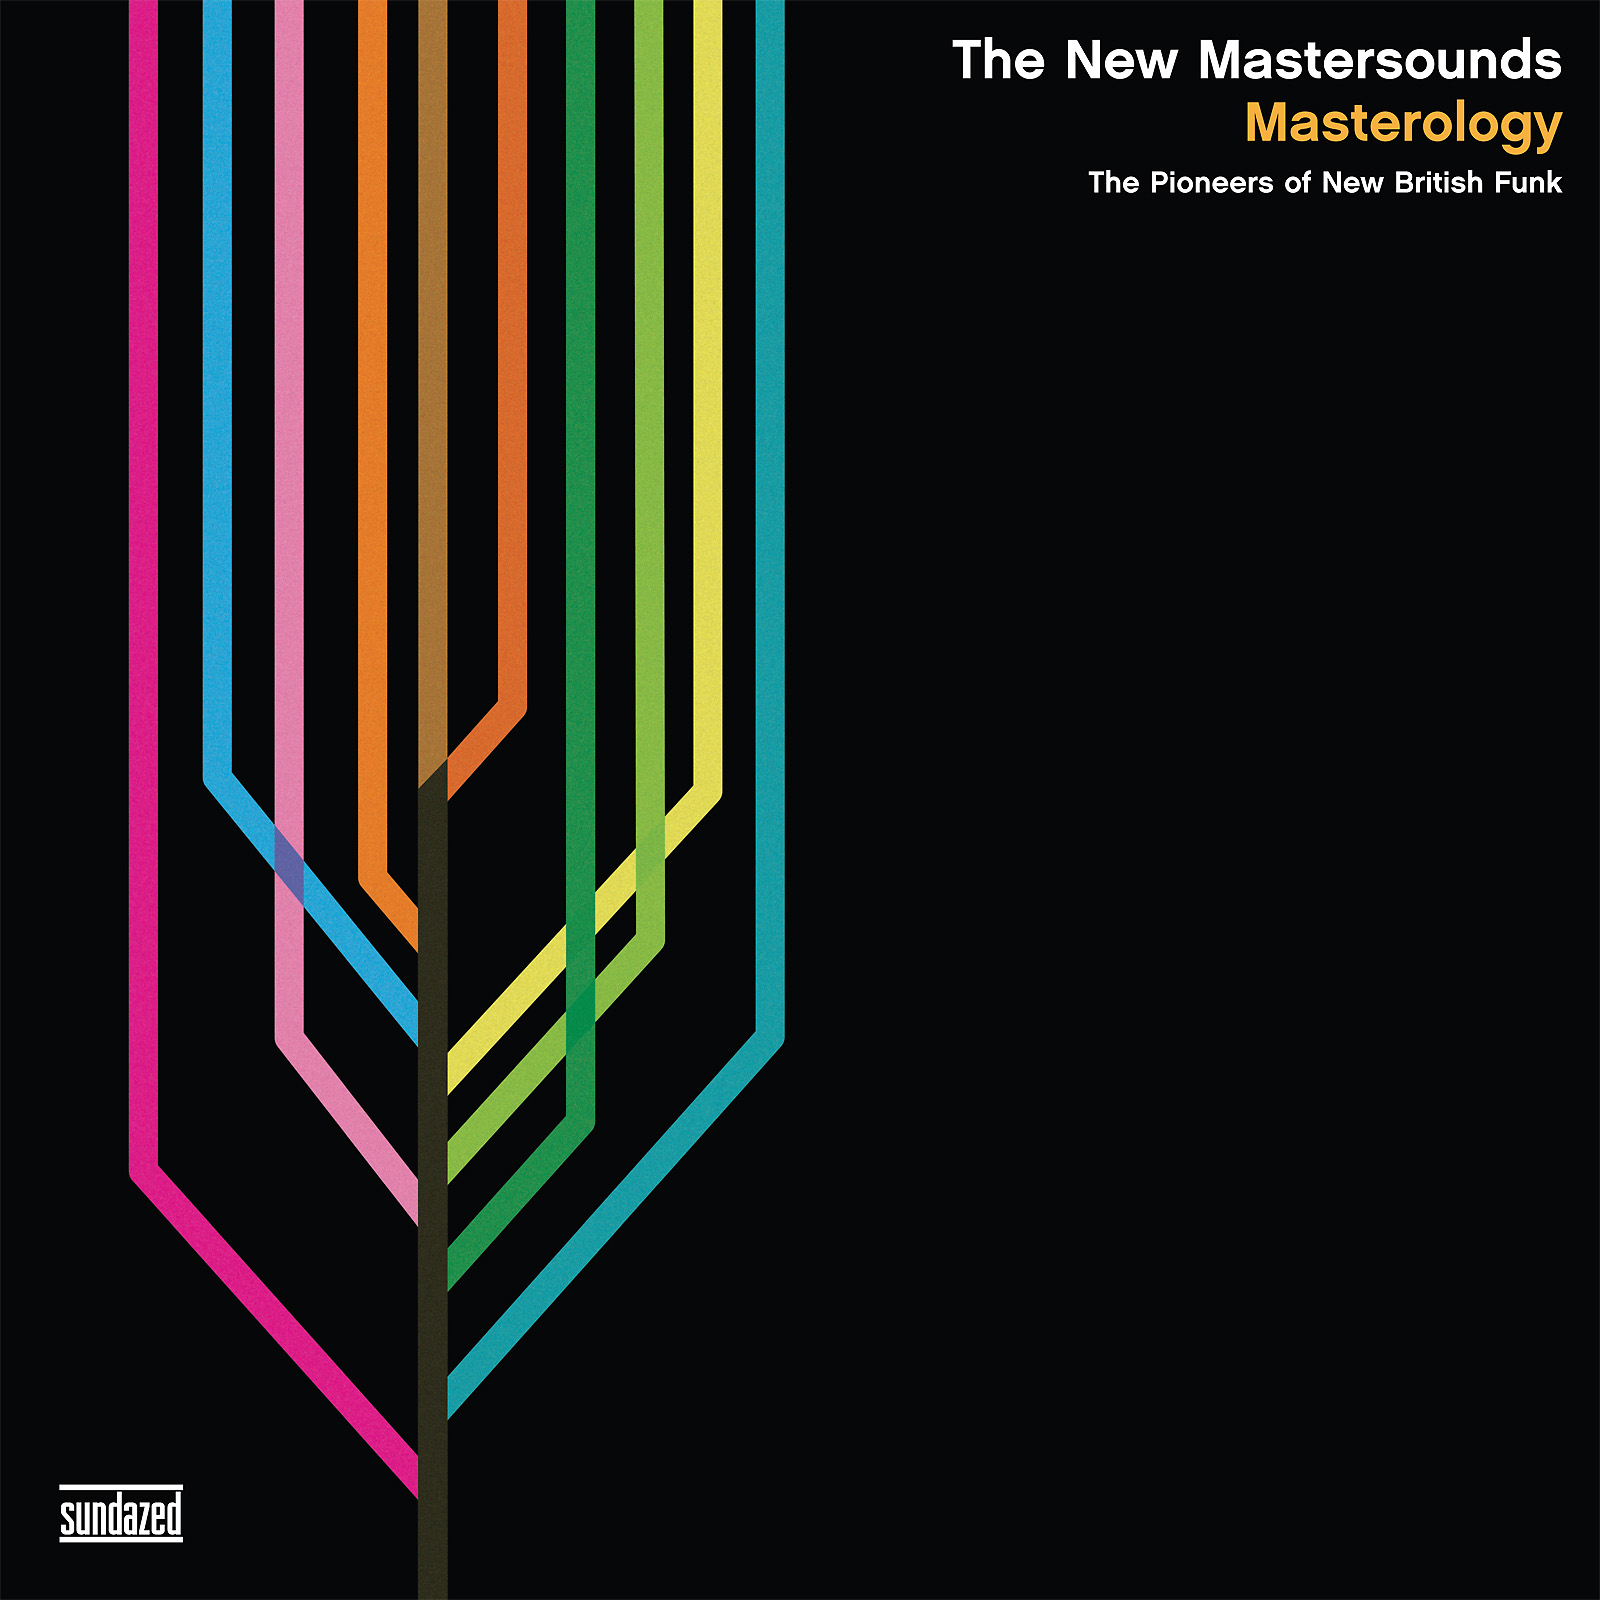 New Mastersounds, The - Masterology: The Pioneers of New British Funk 2-LP Set